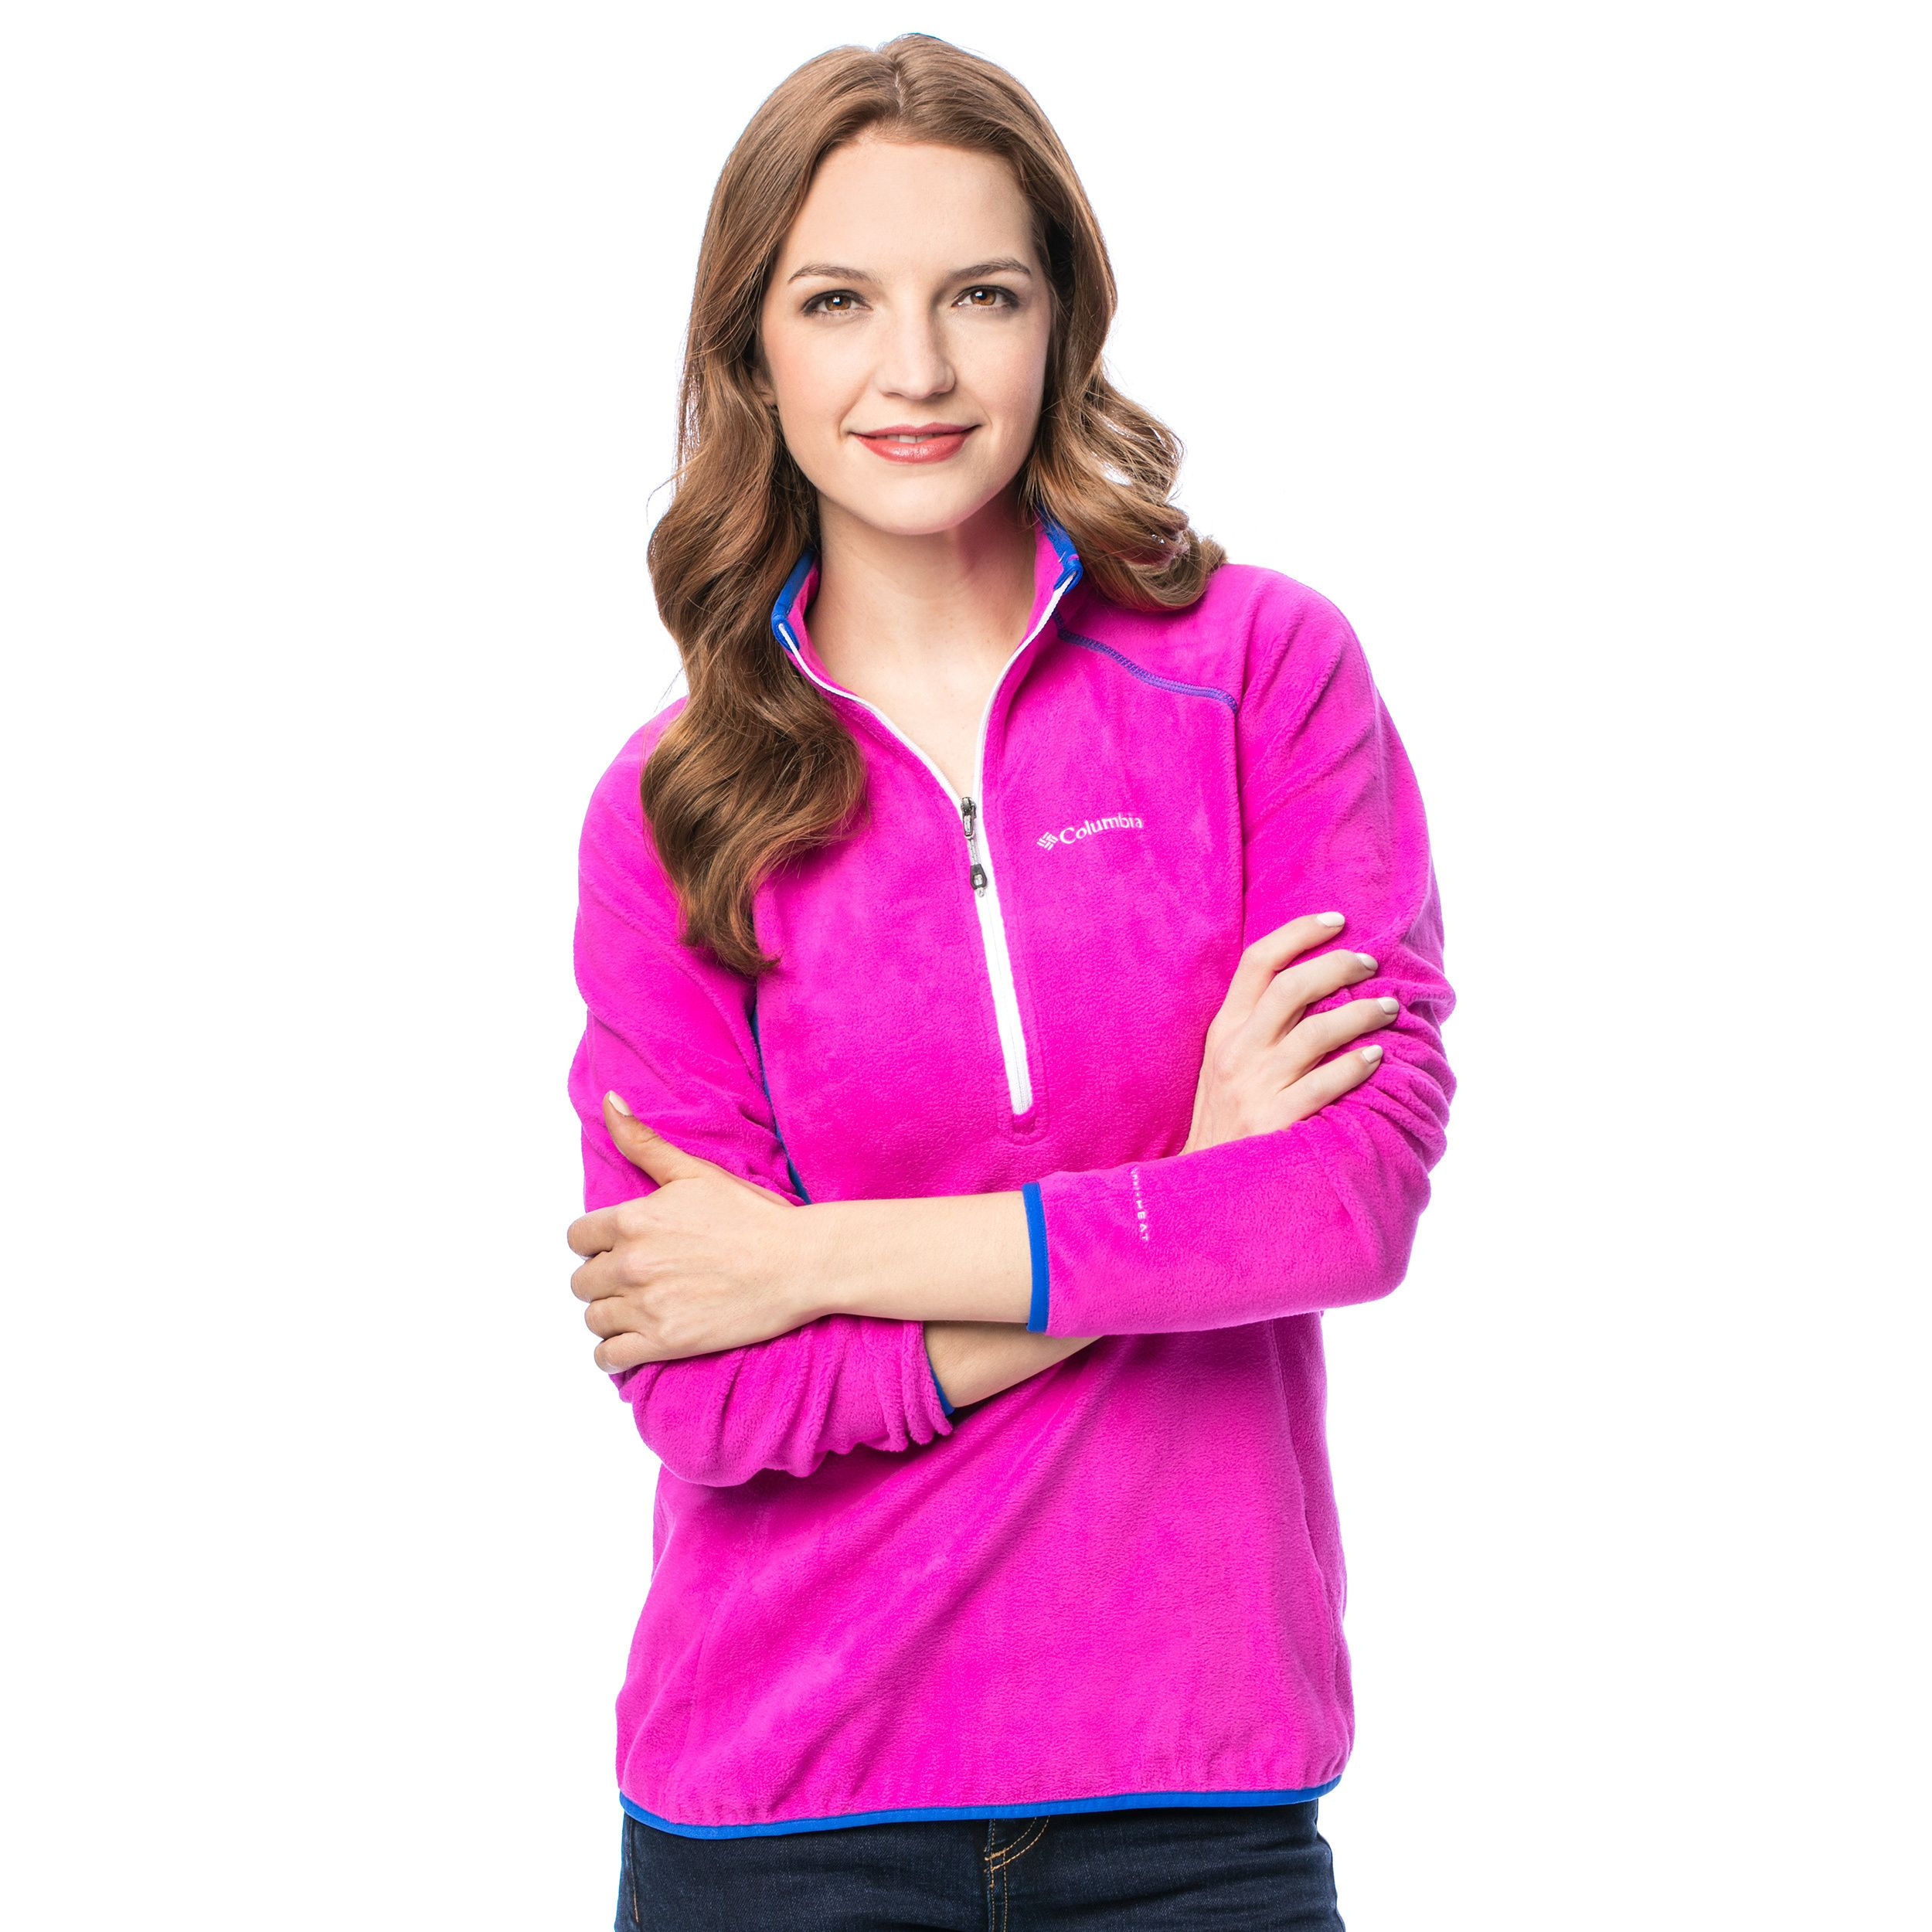 Columbia Women's Heat 360 III 1/2 Zip Jacket